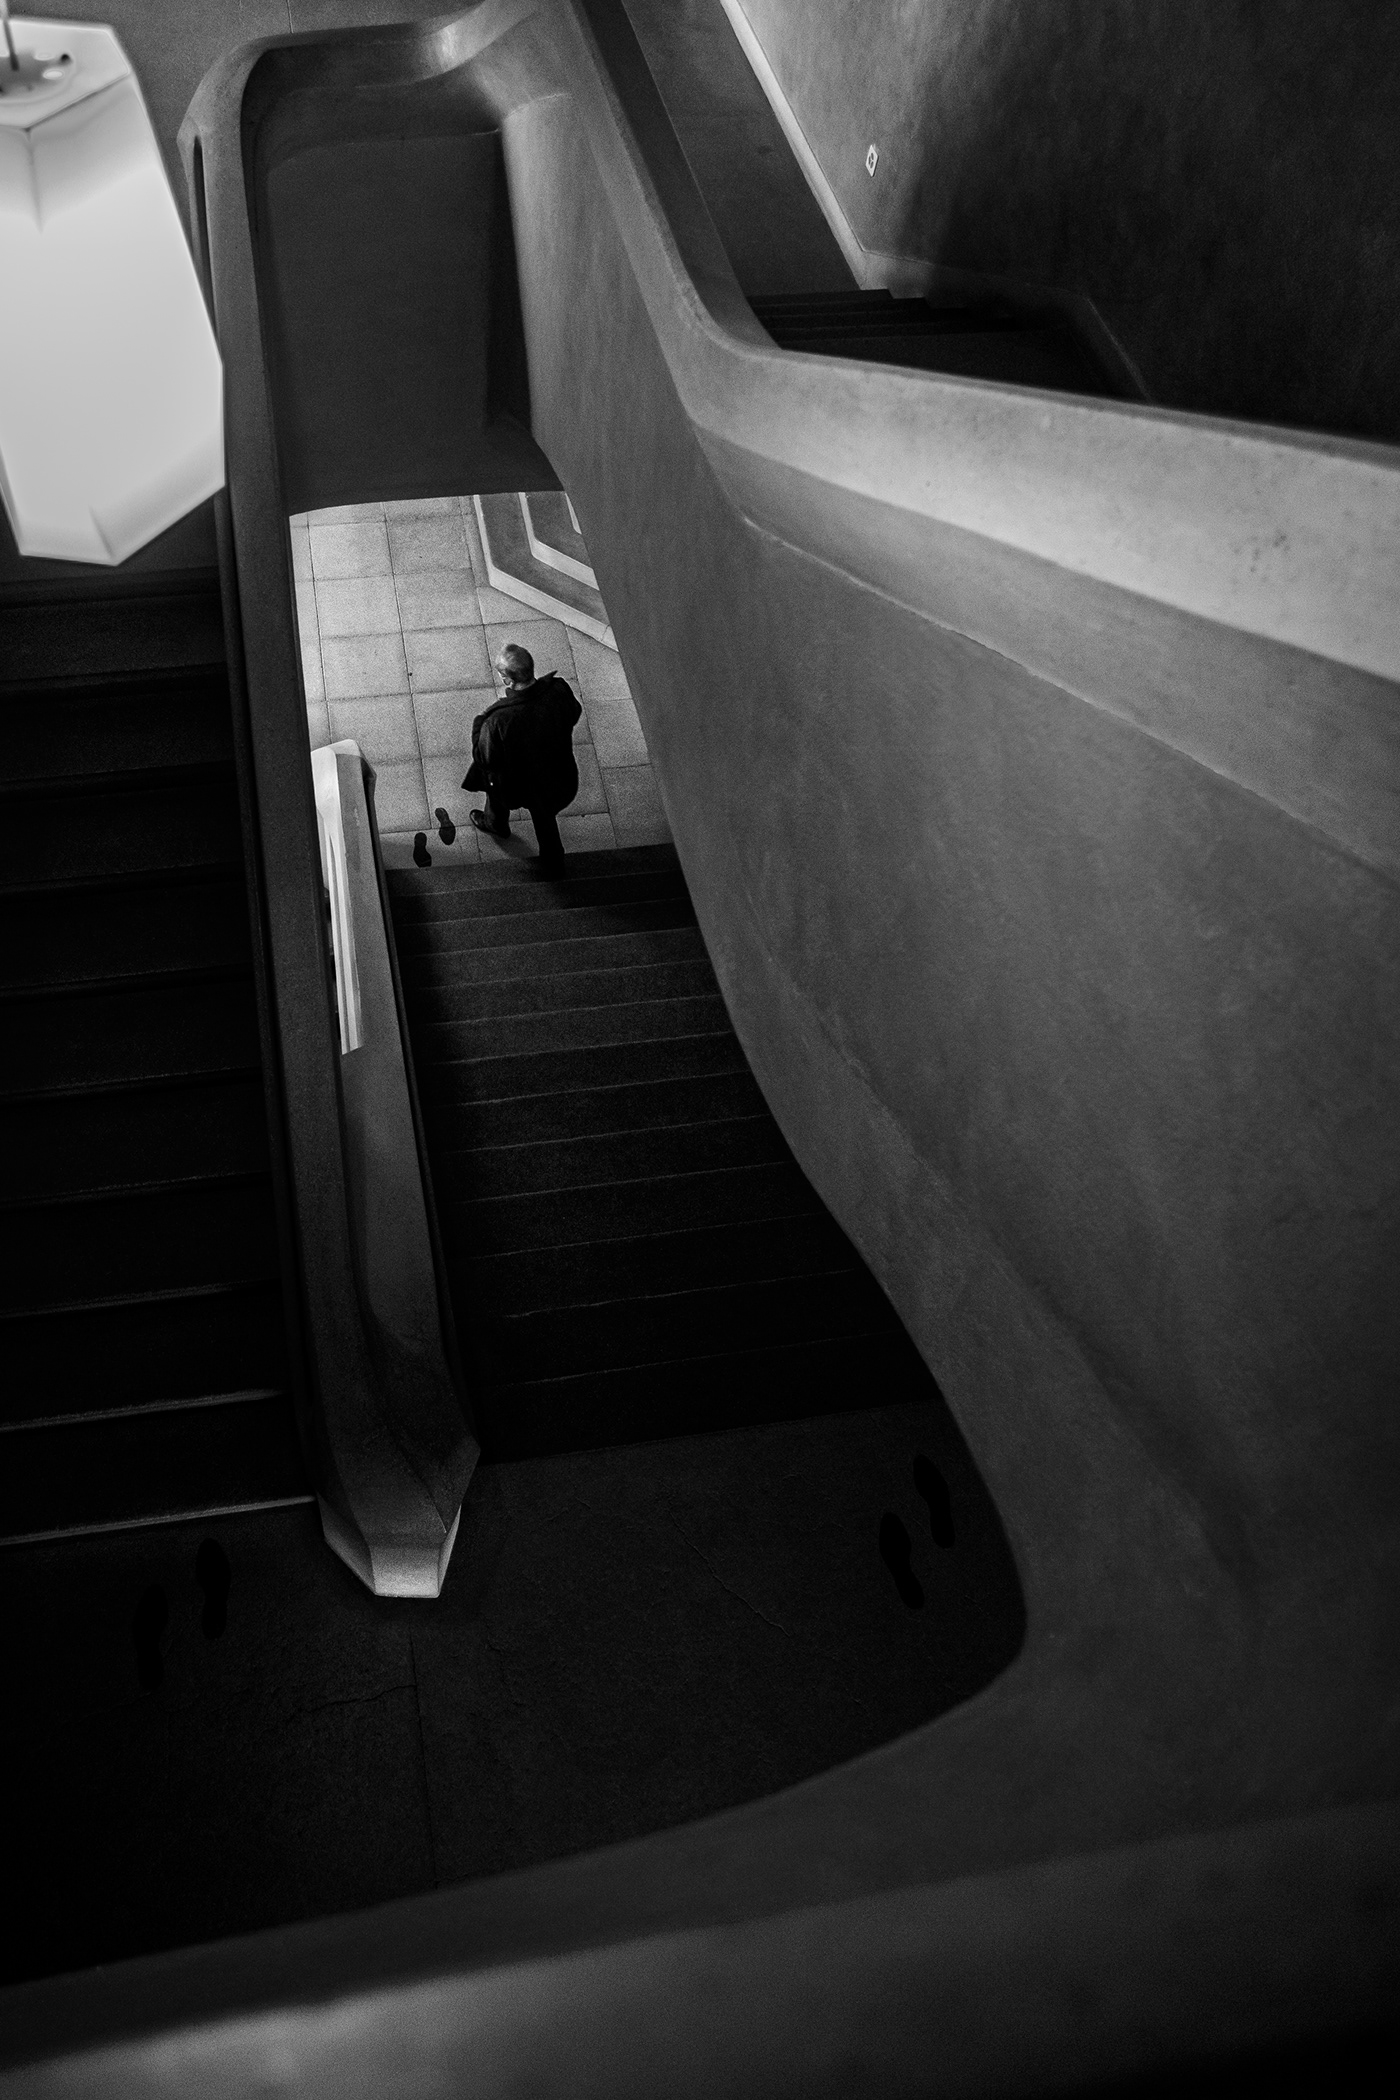 Image may contain: black and white, indoor and stairs